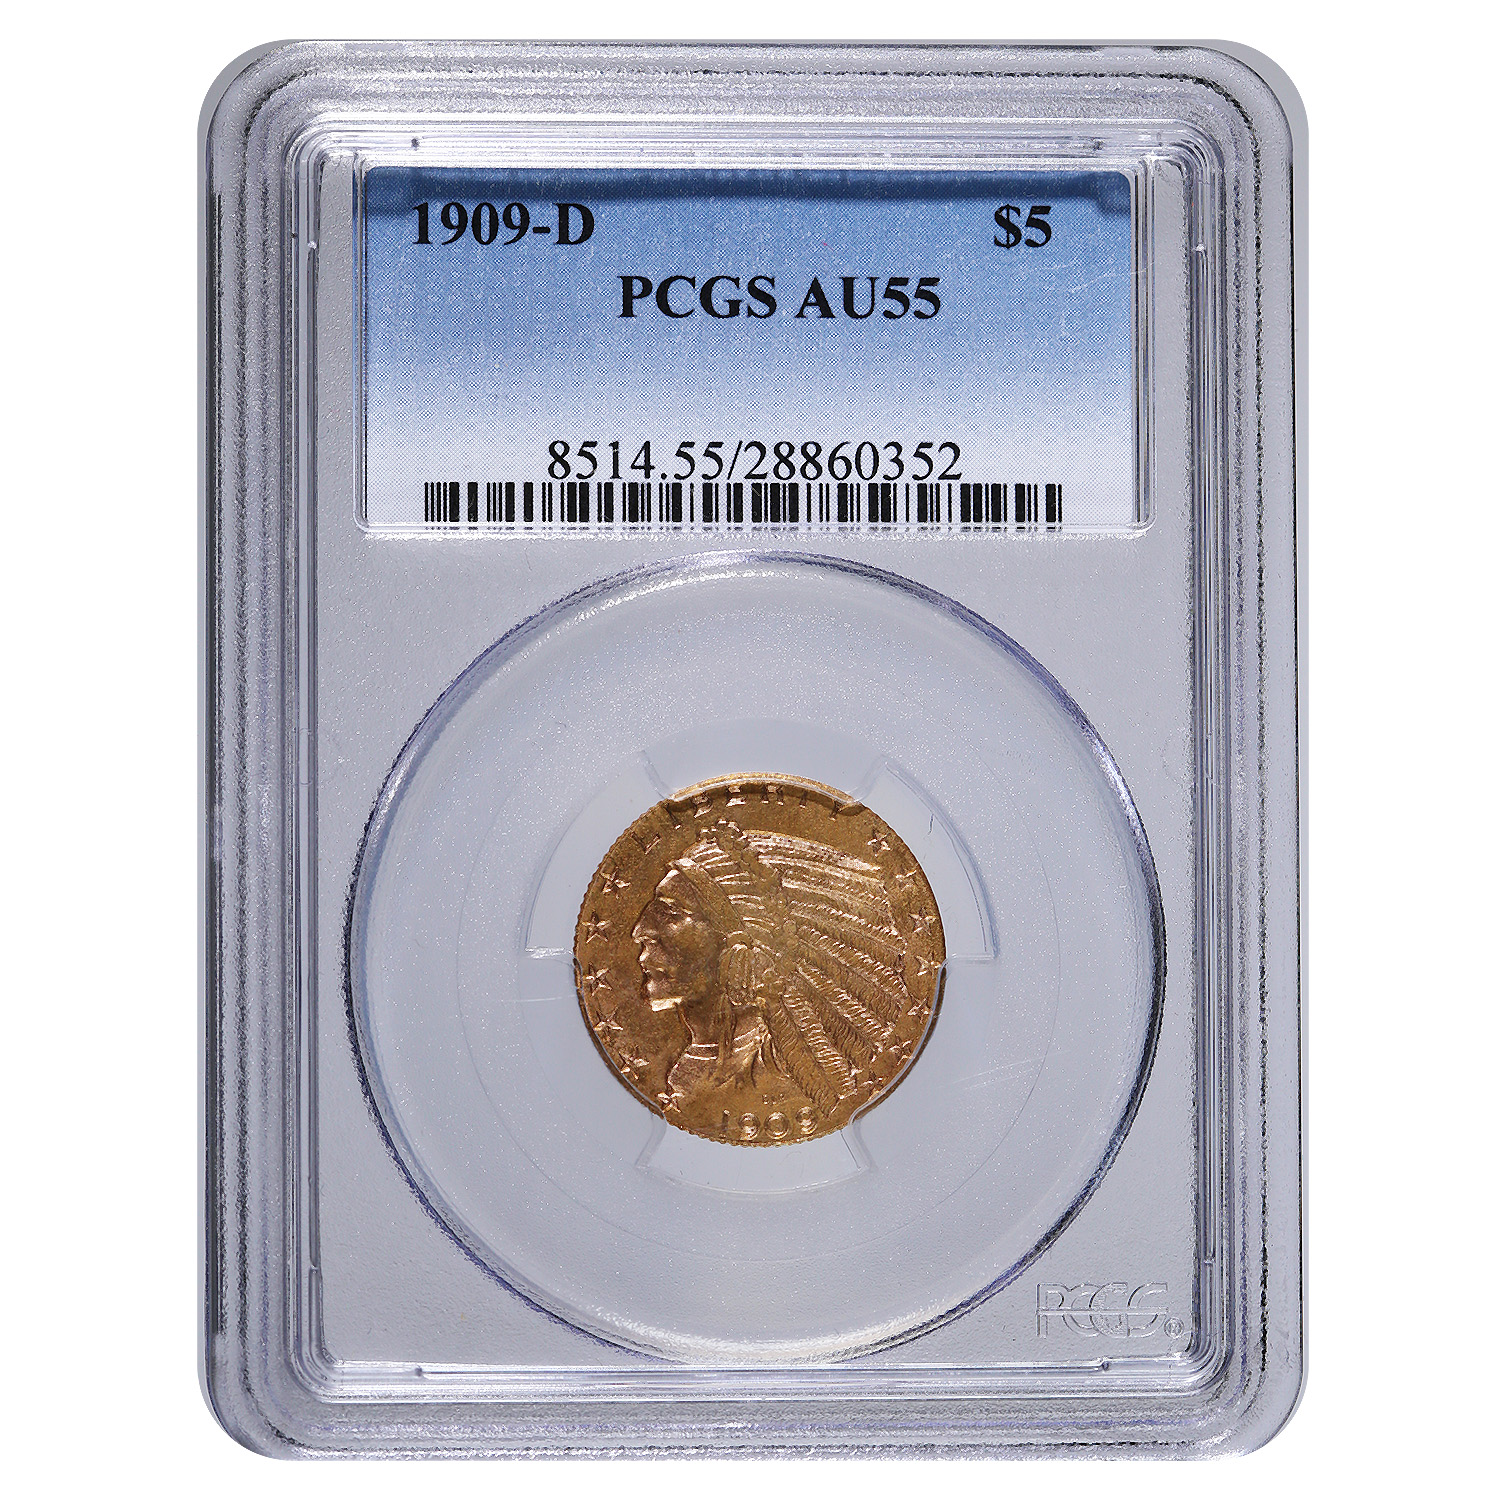 Certified $5 Gold Indian 1909-D AU55 PCGS